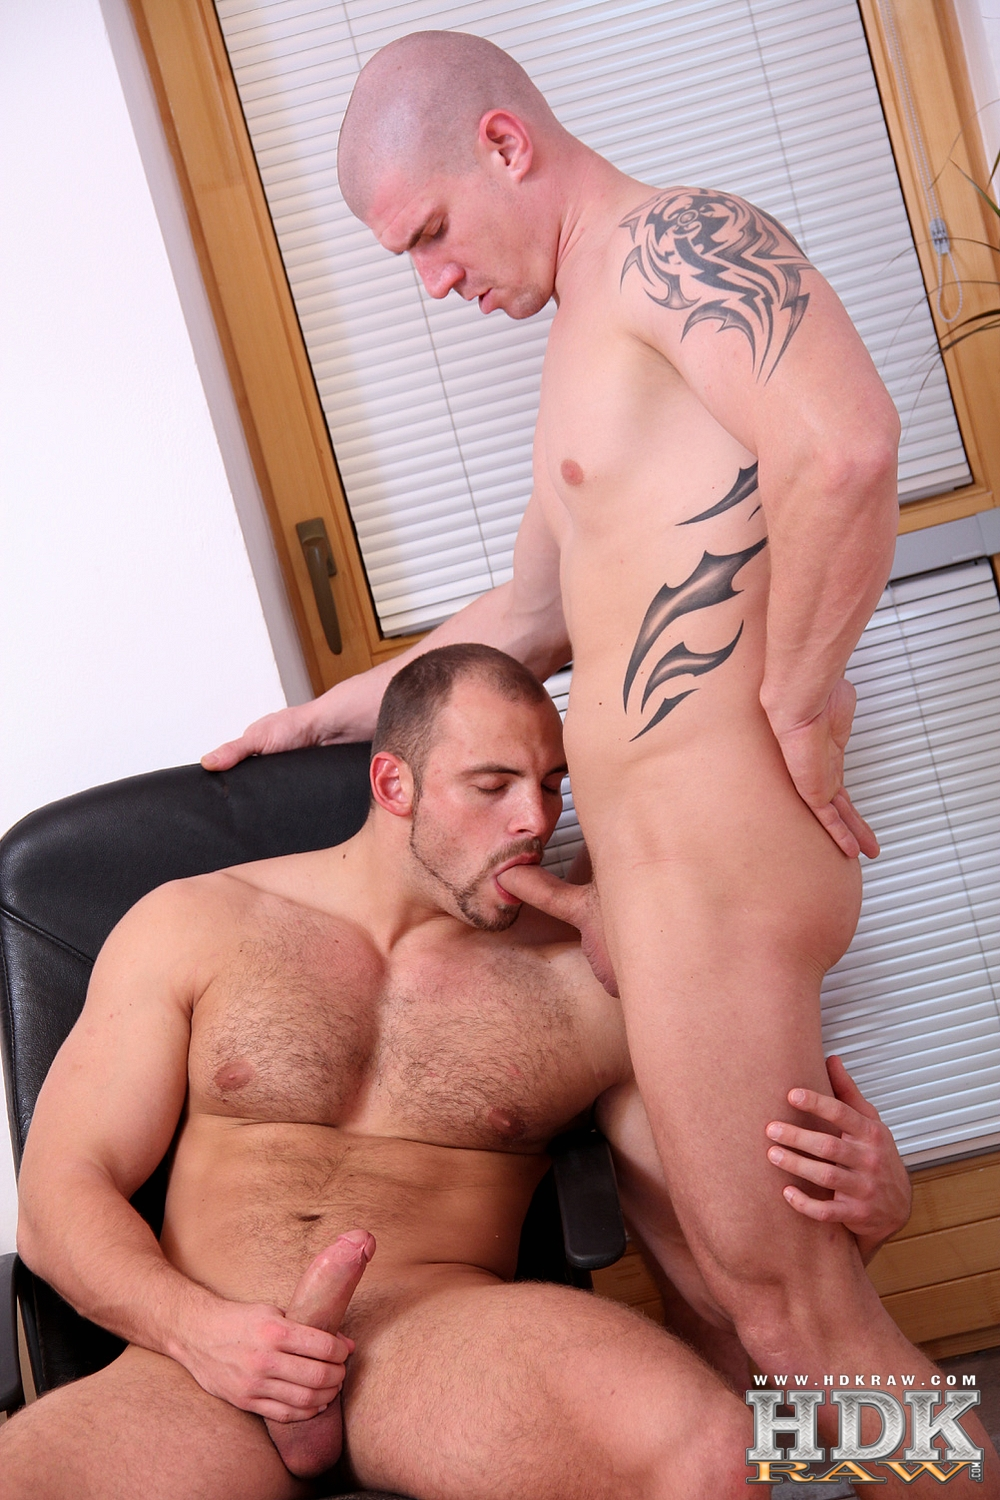 HDK-Raw-Creamin-Fit-Fuckers-Tomm-Max-Born-Muscle-Bareback-Amateur-Gay-Porn-04 Built Hairy Muscle Bear Fucks His Smooth Muscle Buddy Raw